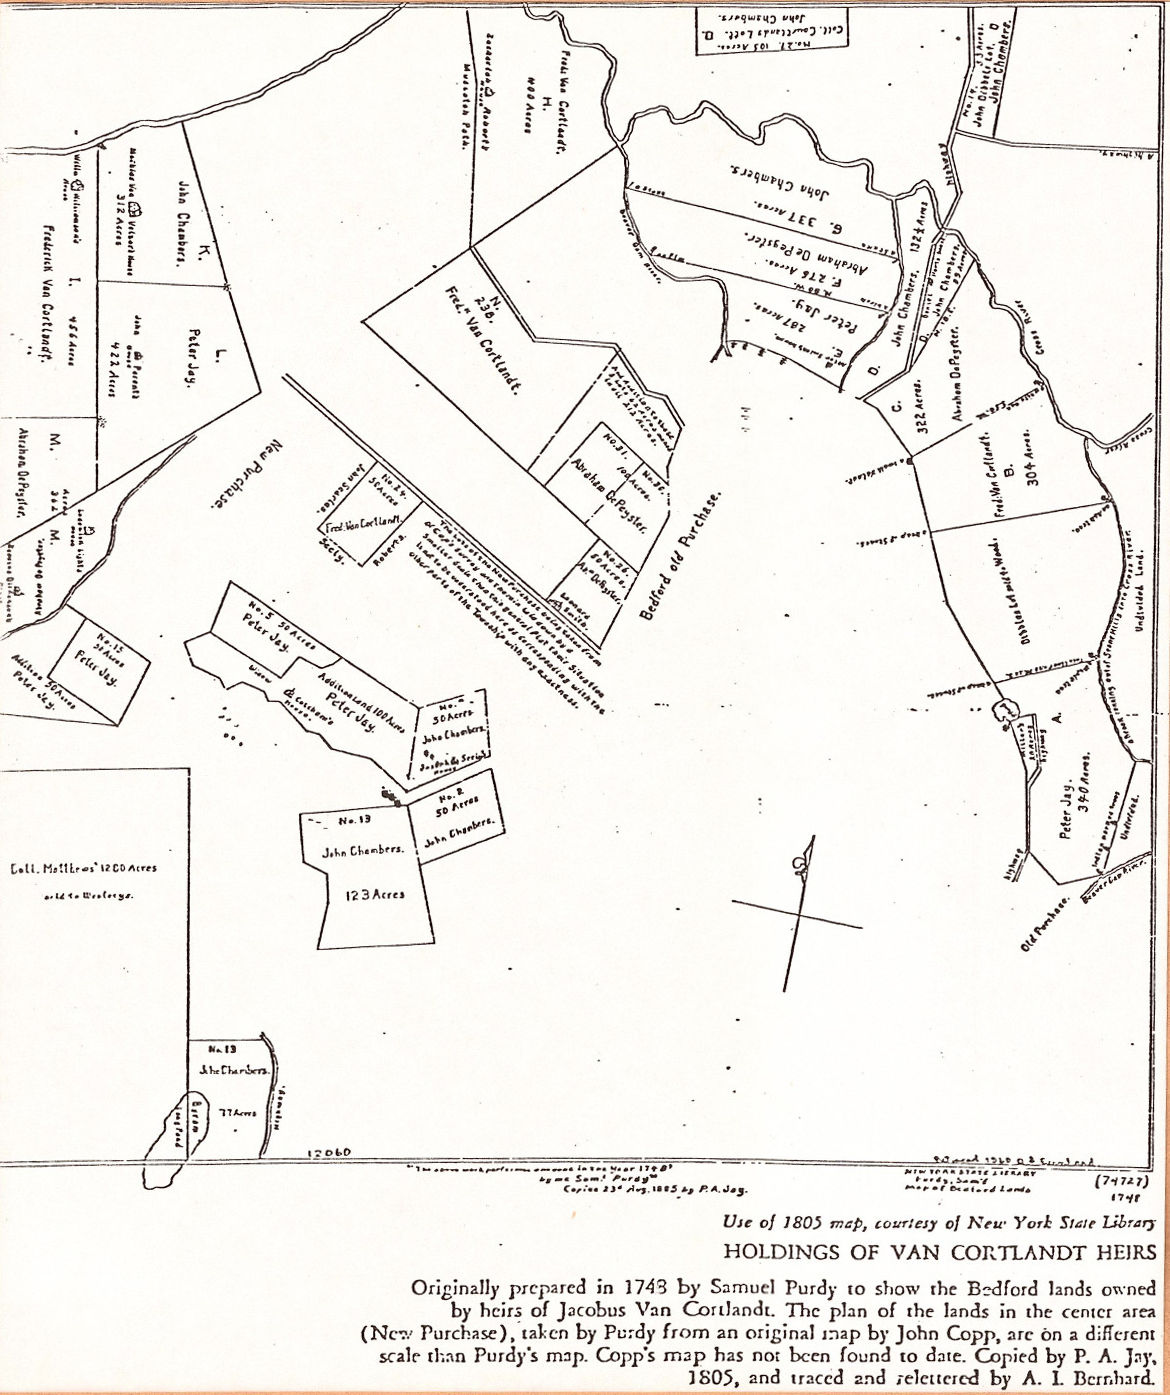 Mount Kisco Public Library 914 666 8041 History 2nd Judicial Circuit Historical Society Maps 262kb Originally Prepared In 1743 By Samuel Purdy To Show The Bedford Lands Owned Heirs Of Jacobus Van Cortlandt From Katonah A